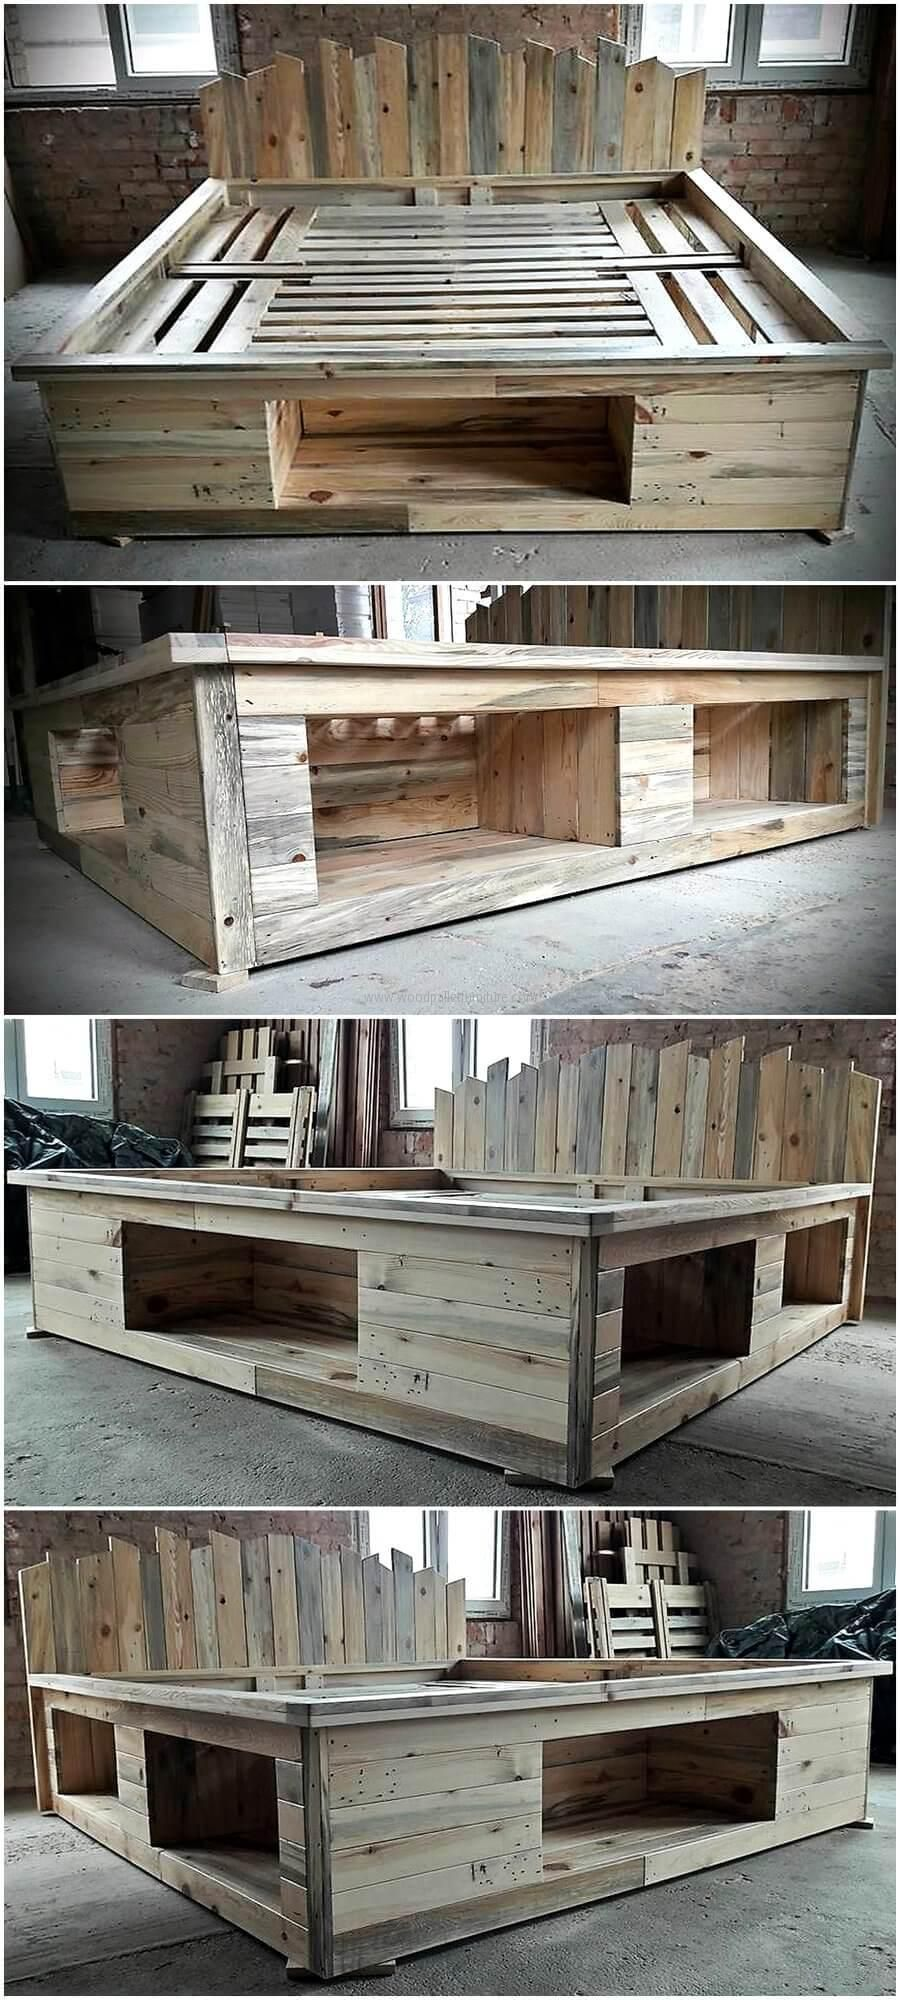 Single pallet bed frame - Repurposed Pallets Bed Frame With Storage Option